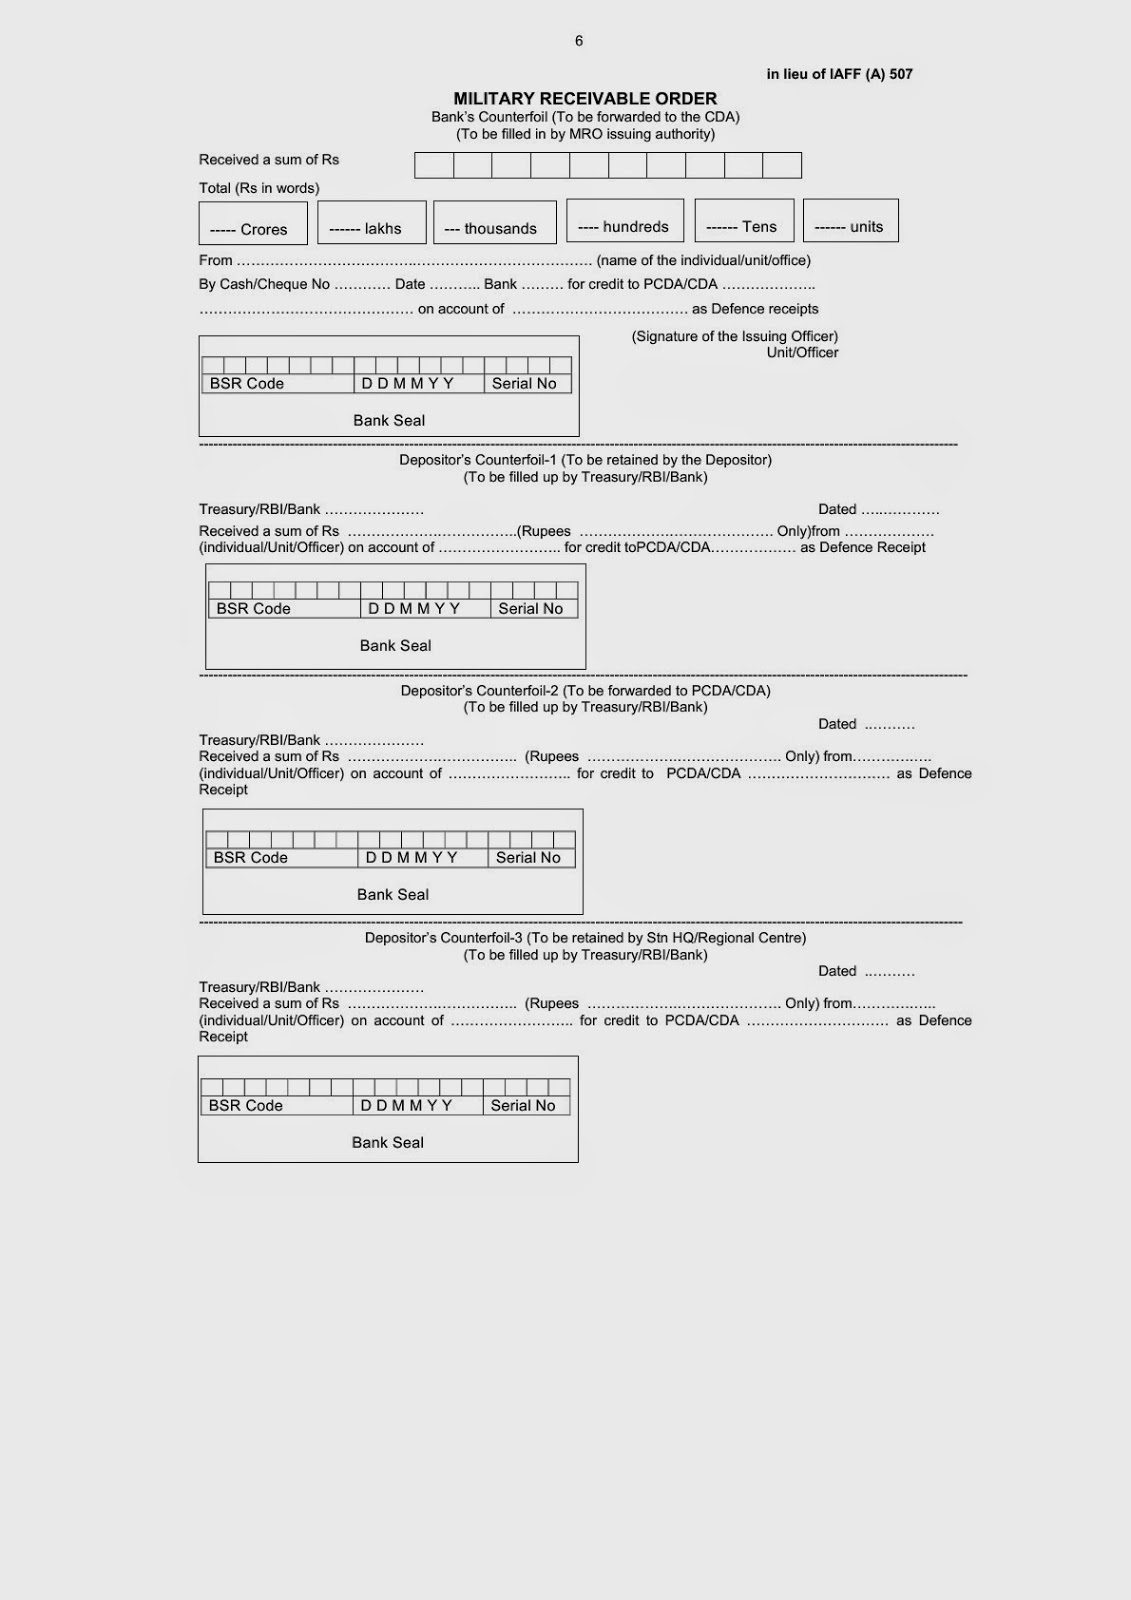 Engineering internship resume for it wiring diagram and fuse box marriage certificate assam format pdf on engineering internship resume for it thecheapjerseys Gallery